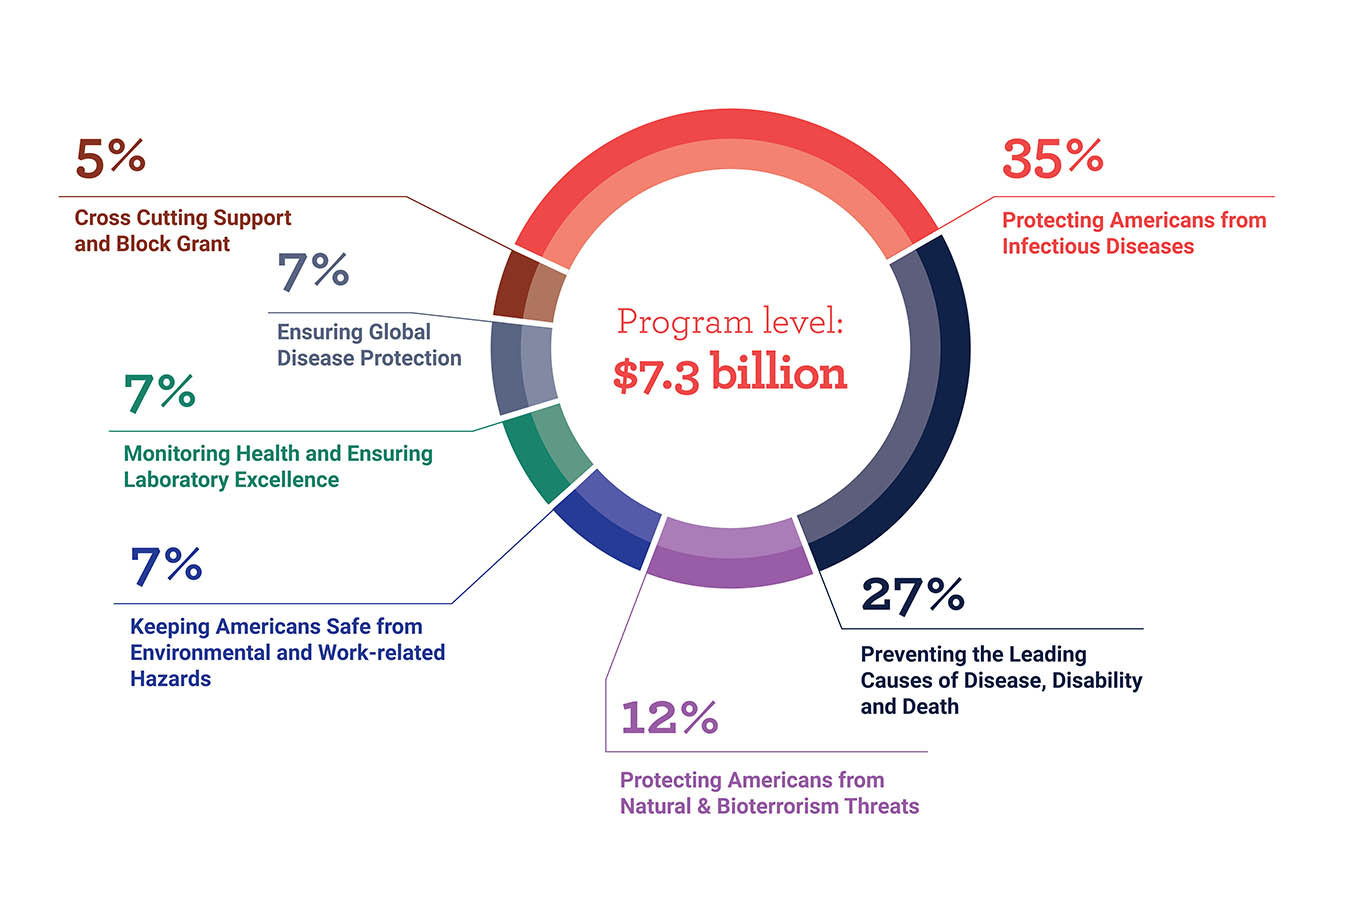 Program level: $7.3 billion -35% Protecting Americans from infectious diseases -22% Preventing the leading causes of disease, disability, and death -12% Protecting Americans from natural & bioterrorism threats -7% Keeping Americans safe from environmental and work-related hazards -7% Monitoring health and ensuring laboratory excellence -7% Ensuring global disease protection -5% Cross cutting support and block grant